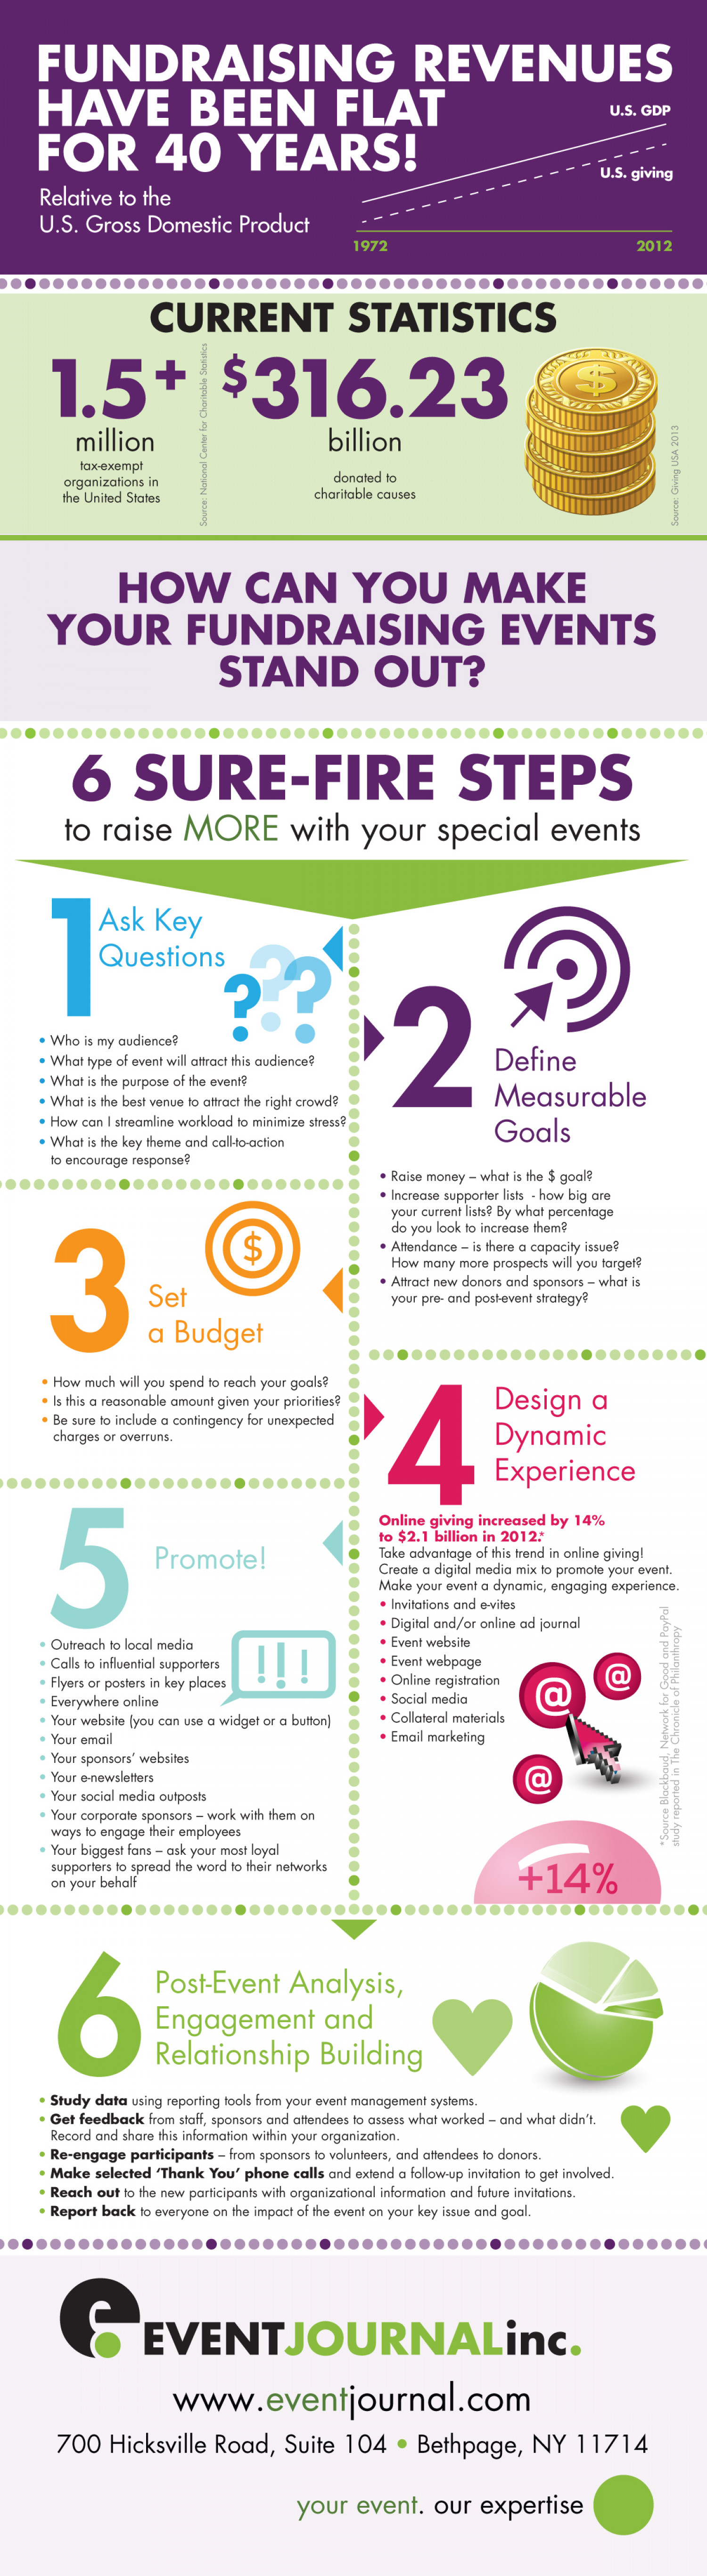 6 Sure-Fire Steps to Raise More With Your Special Events Infographic